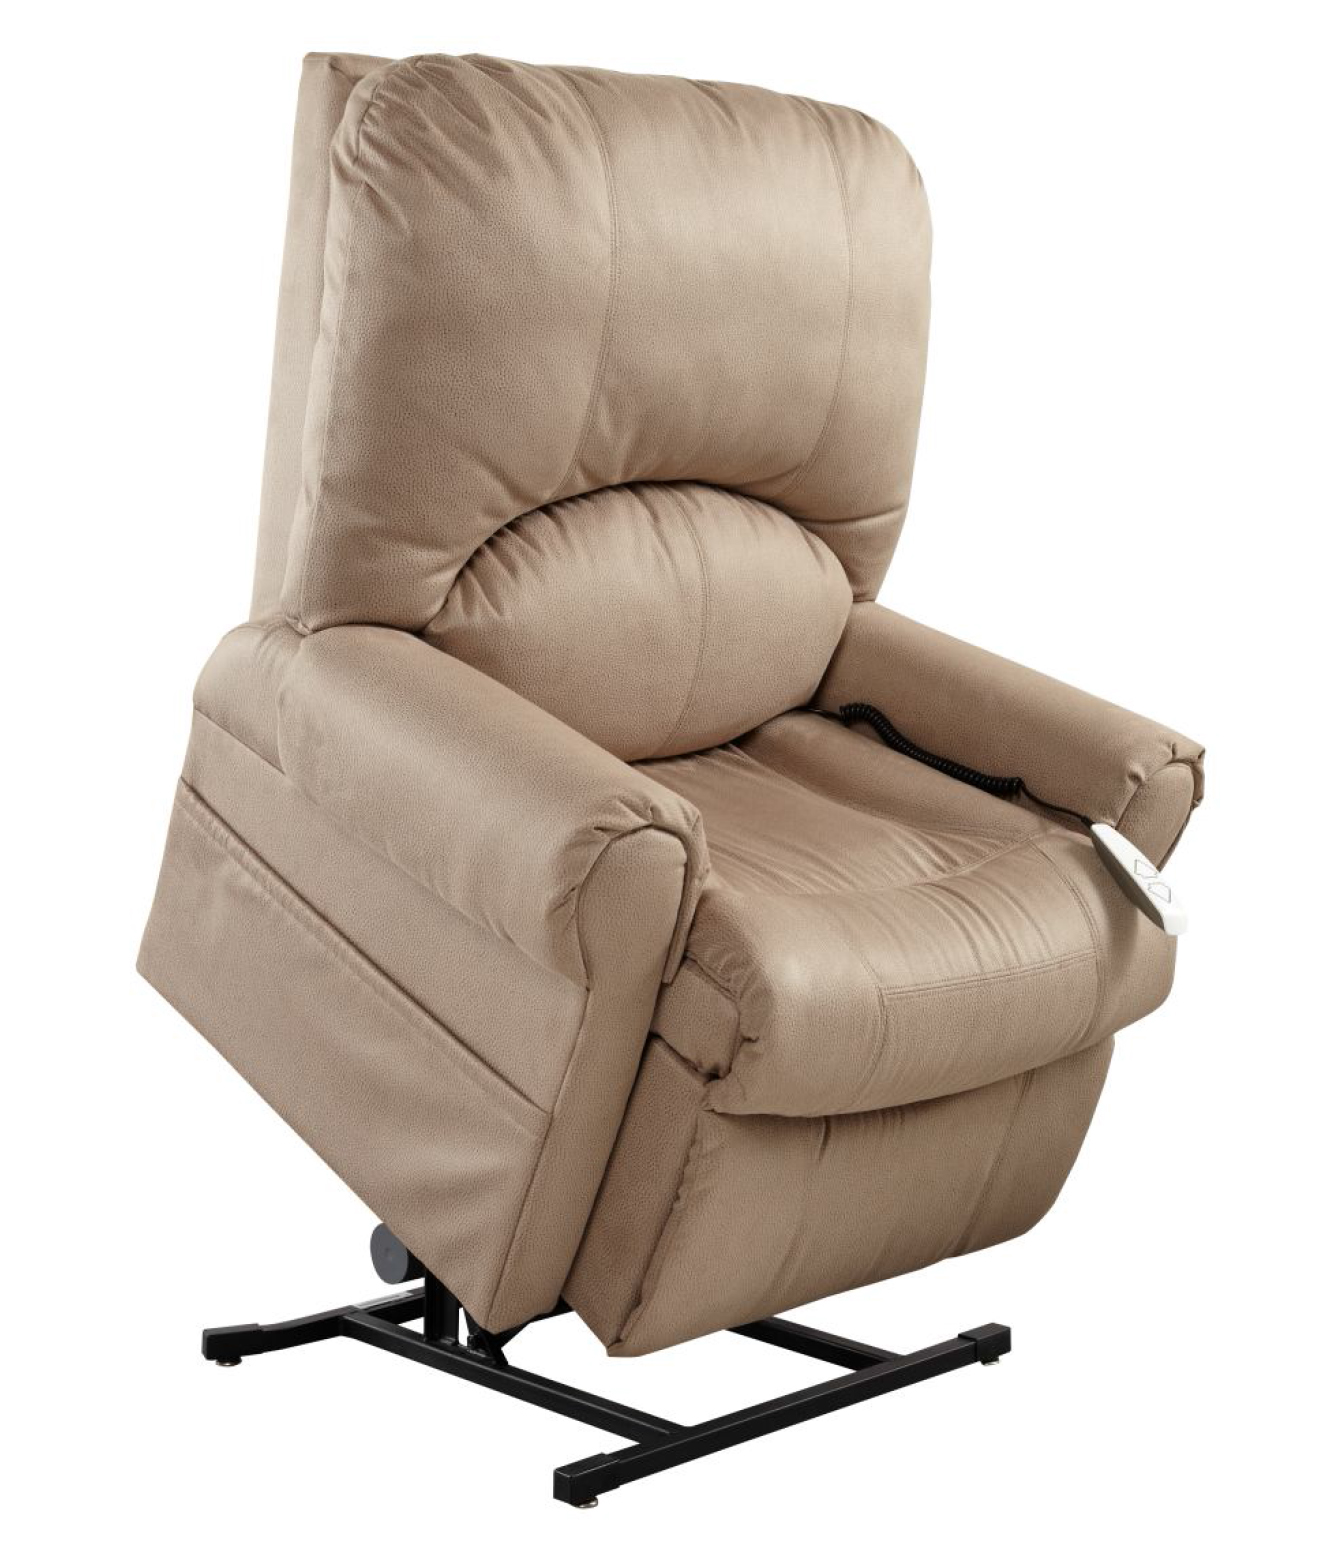 As 6001 Torch Electric Power Recliner Lift Chair By Mega